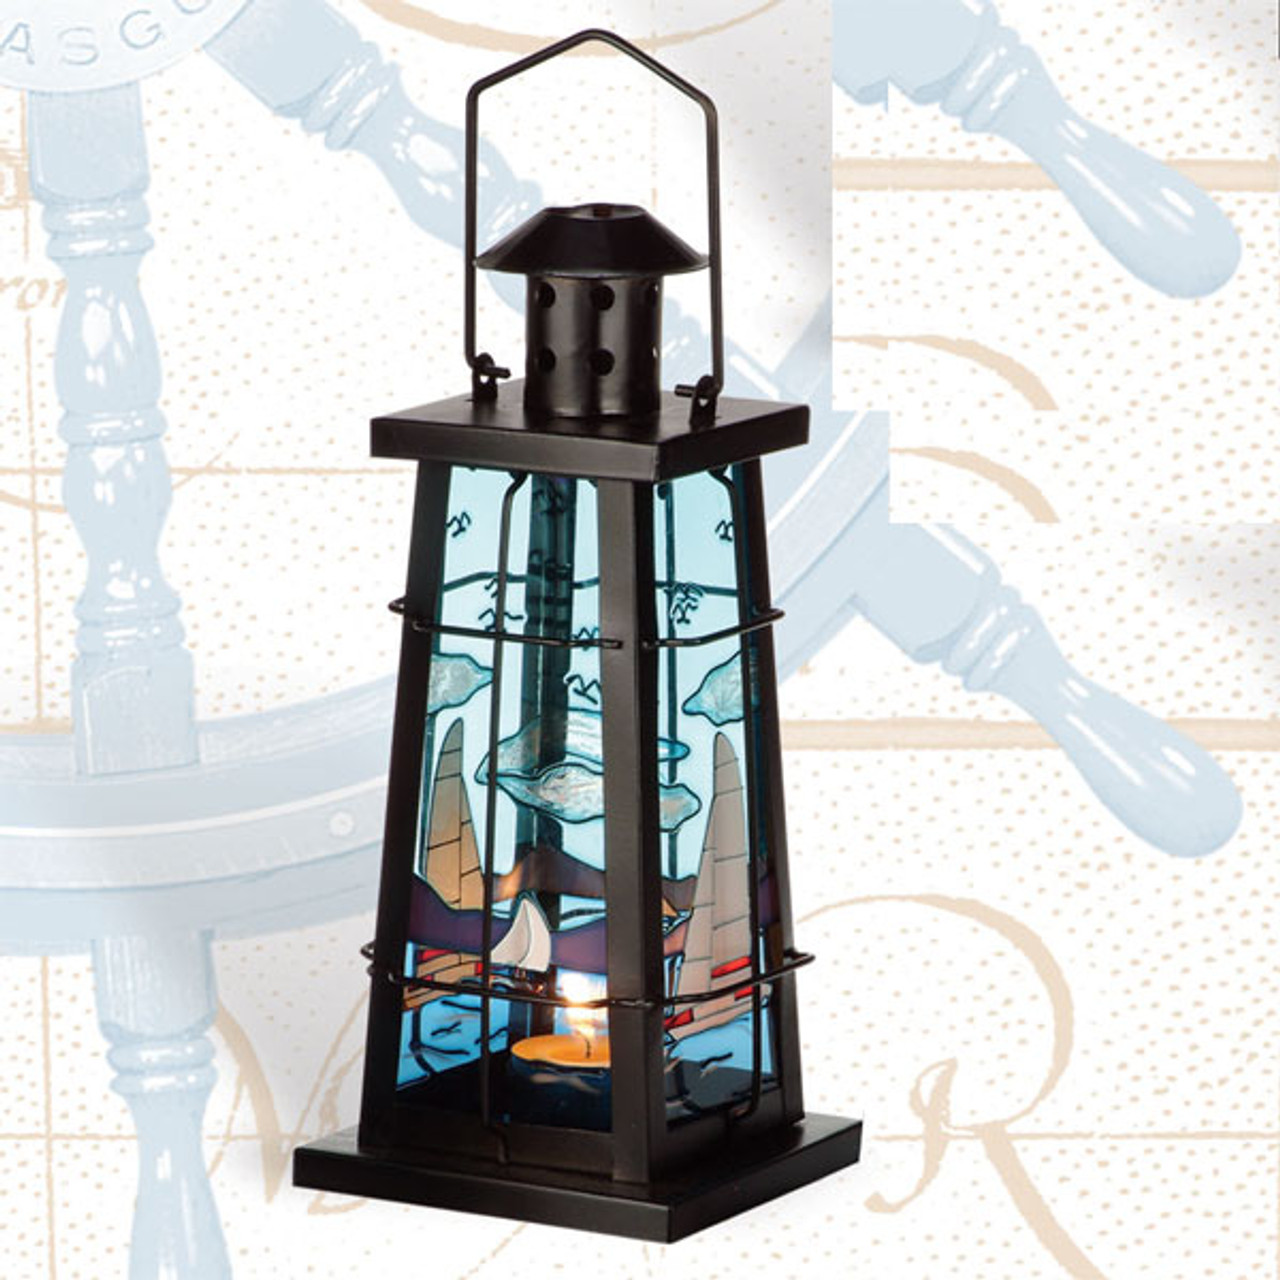 Iron Nautical Candle Holderswith a Sailboat Design